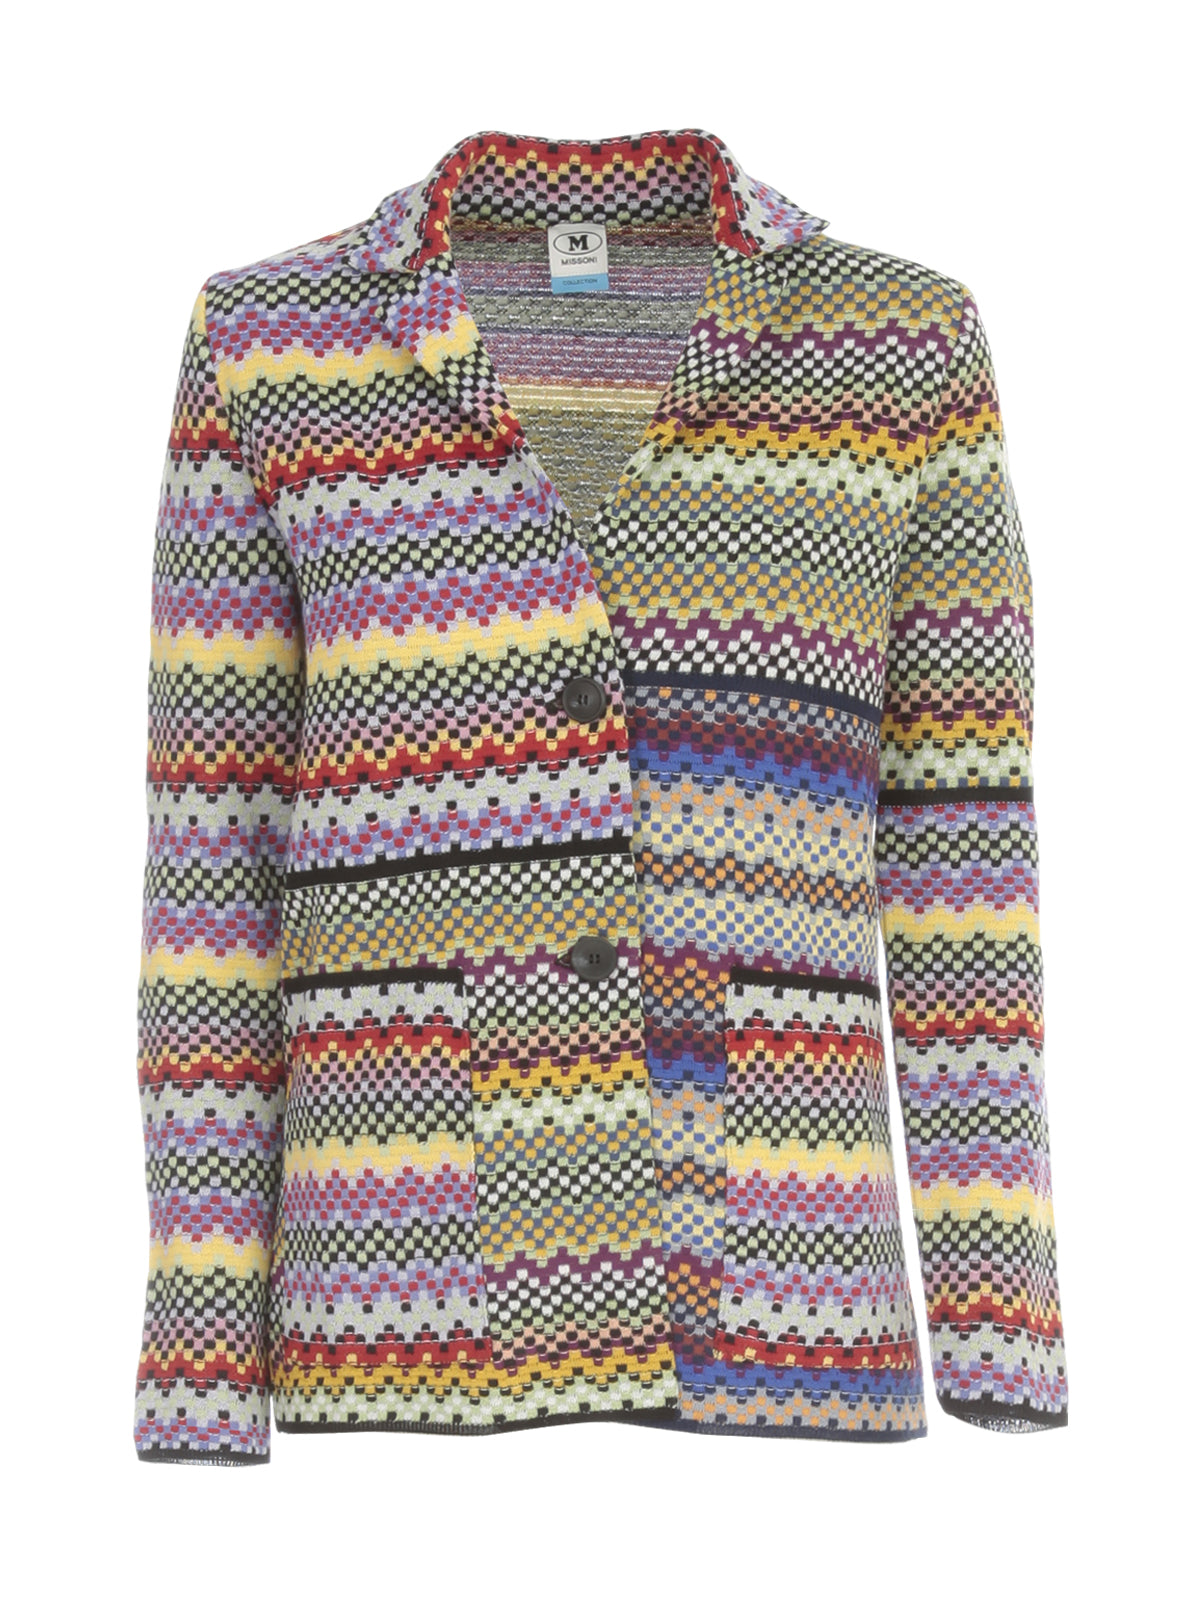 M Missoni M MISSONI GEOMETRIC PATTERNED SINGLE BREASTED BLAZER